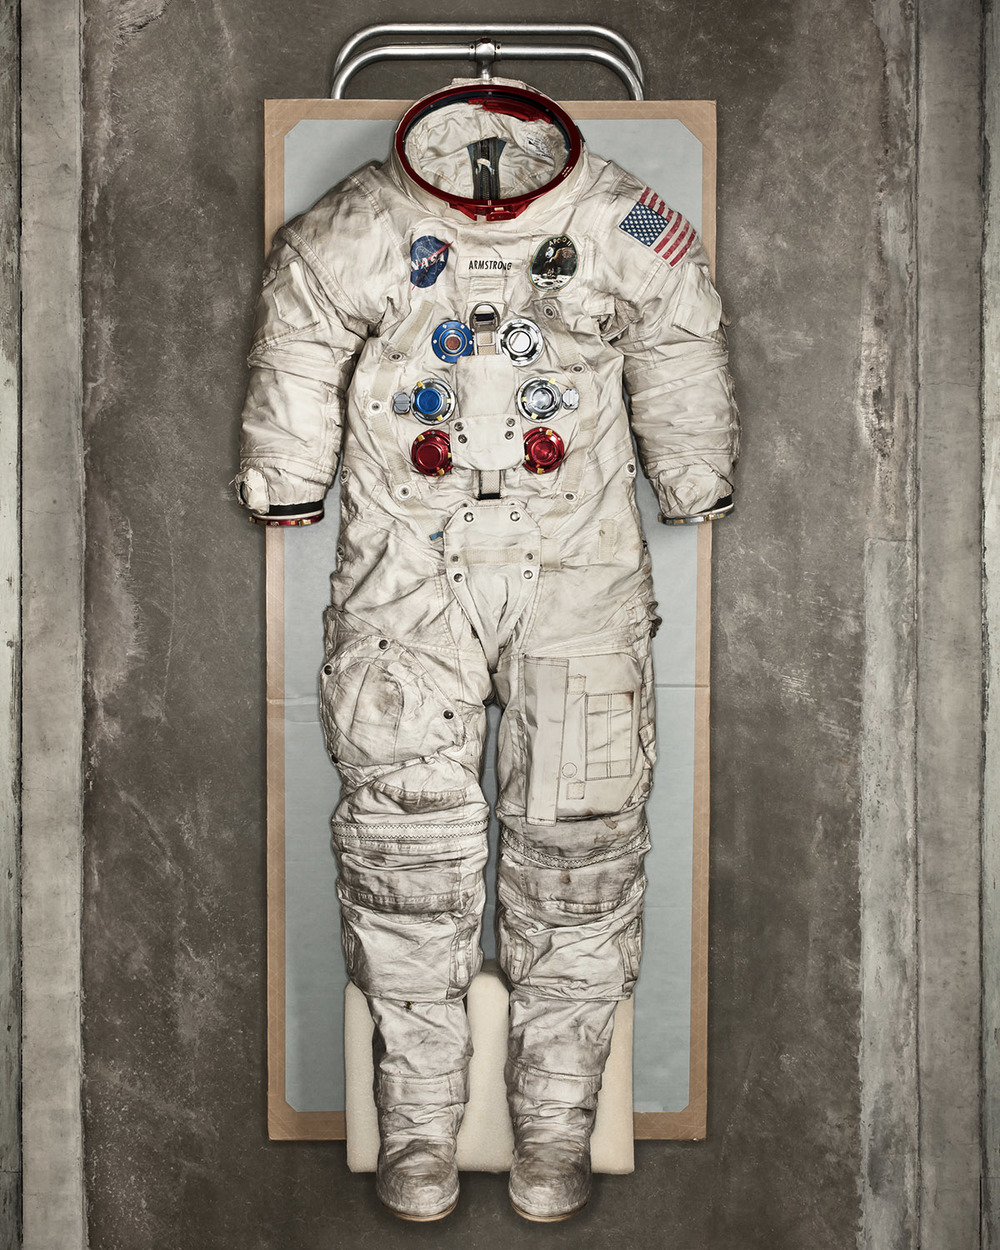 OPT_armstrong_space_suit_8102_BIG.jpg